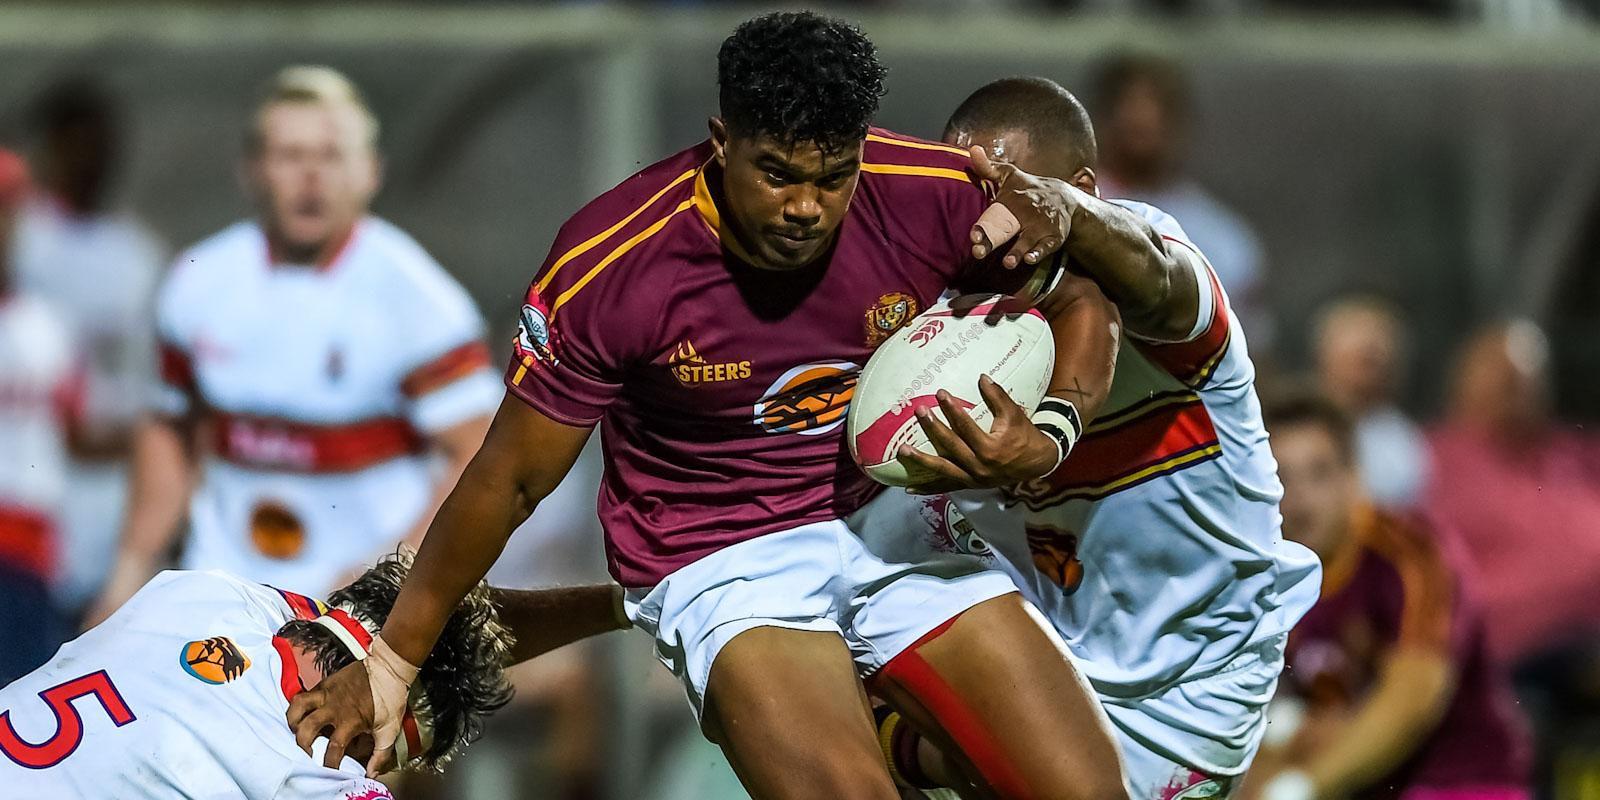 Duncan Saal in action for FNB Maties in the FNB Varsity Cup